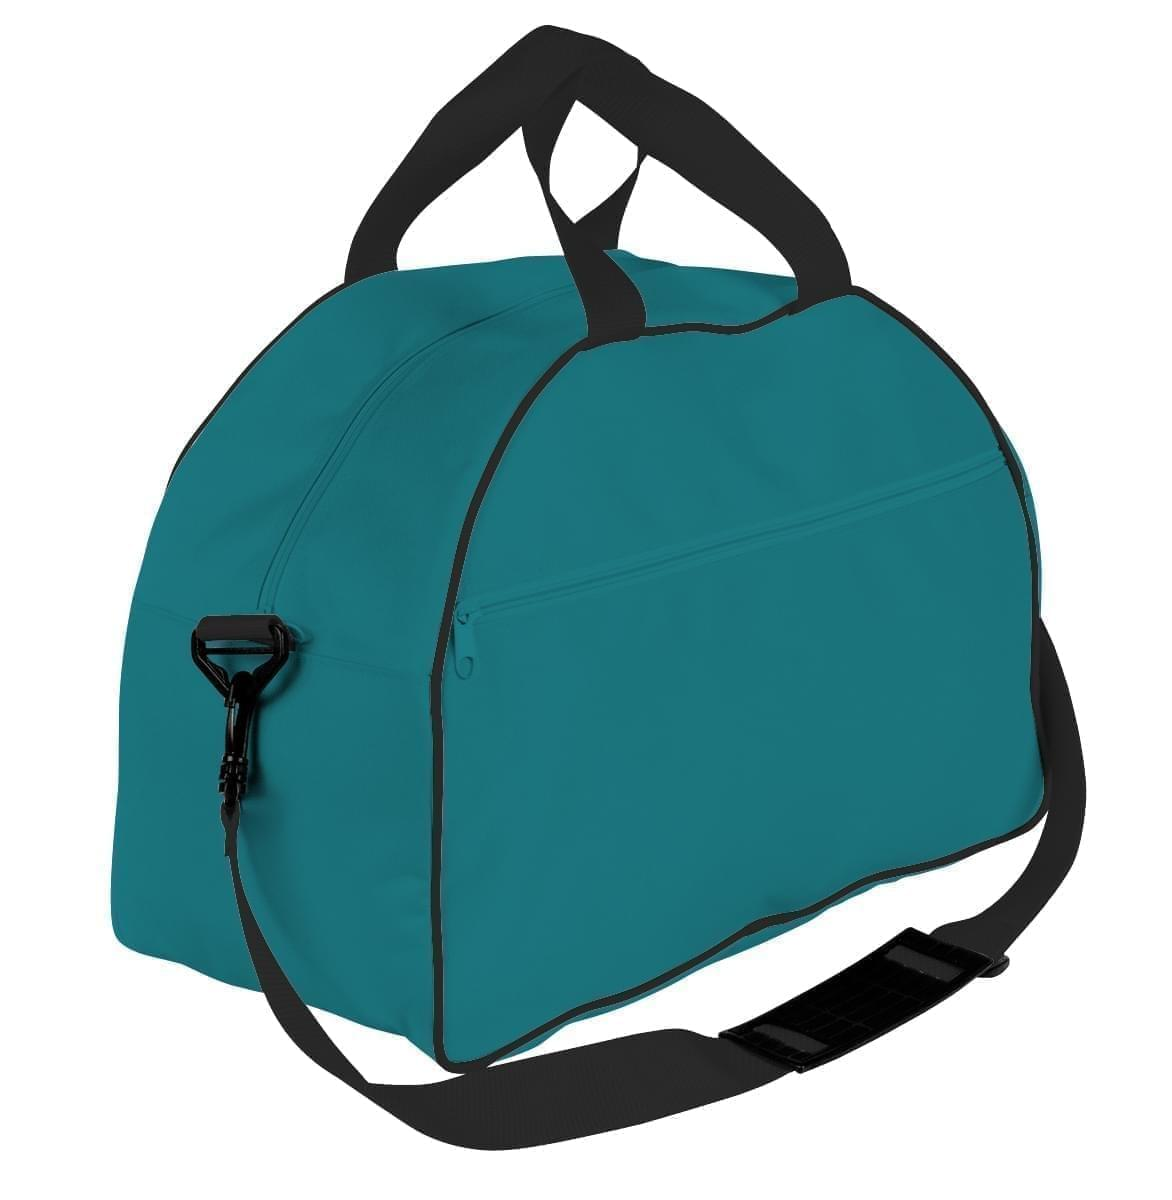 USA Made Nylon Poly Weekender Duffel Bags, Turquoise-Black, 6PKV32JA9R